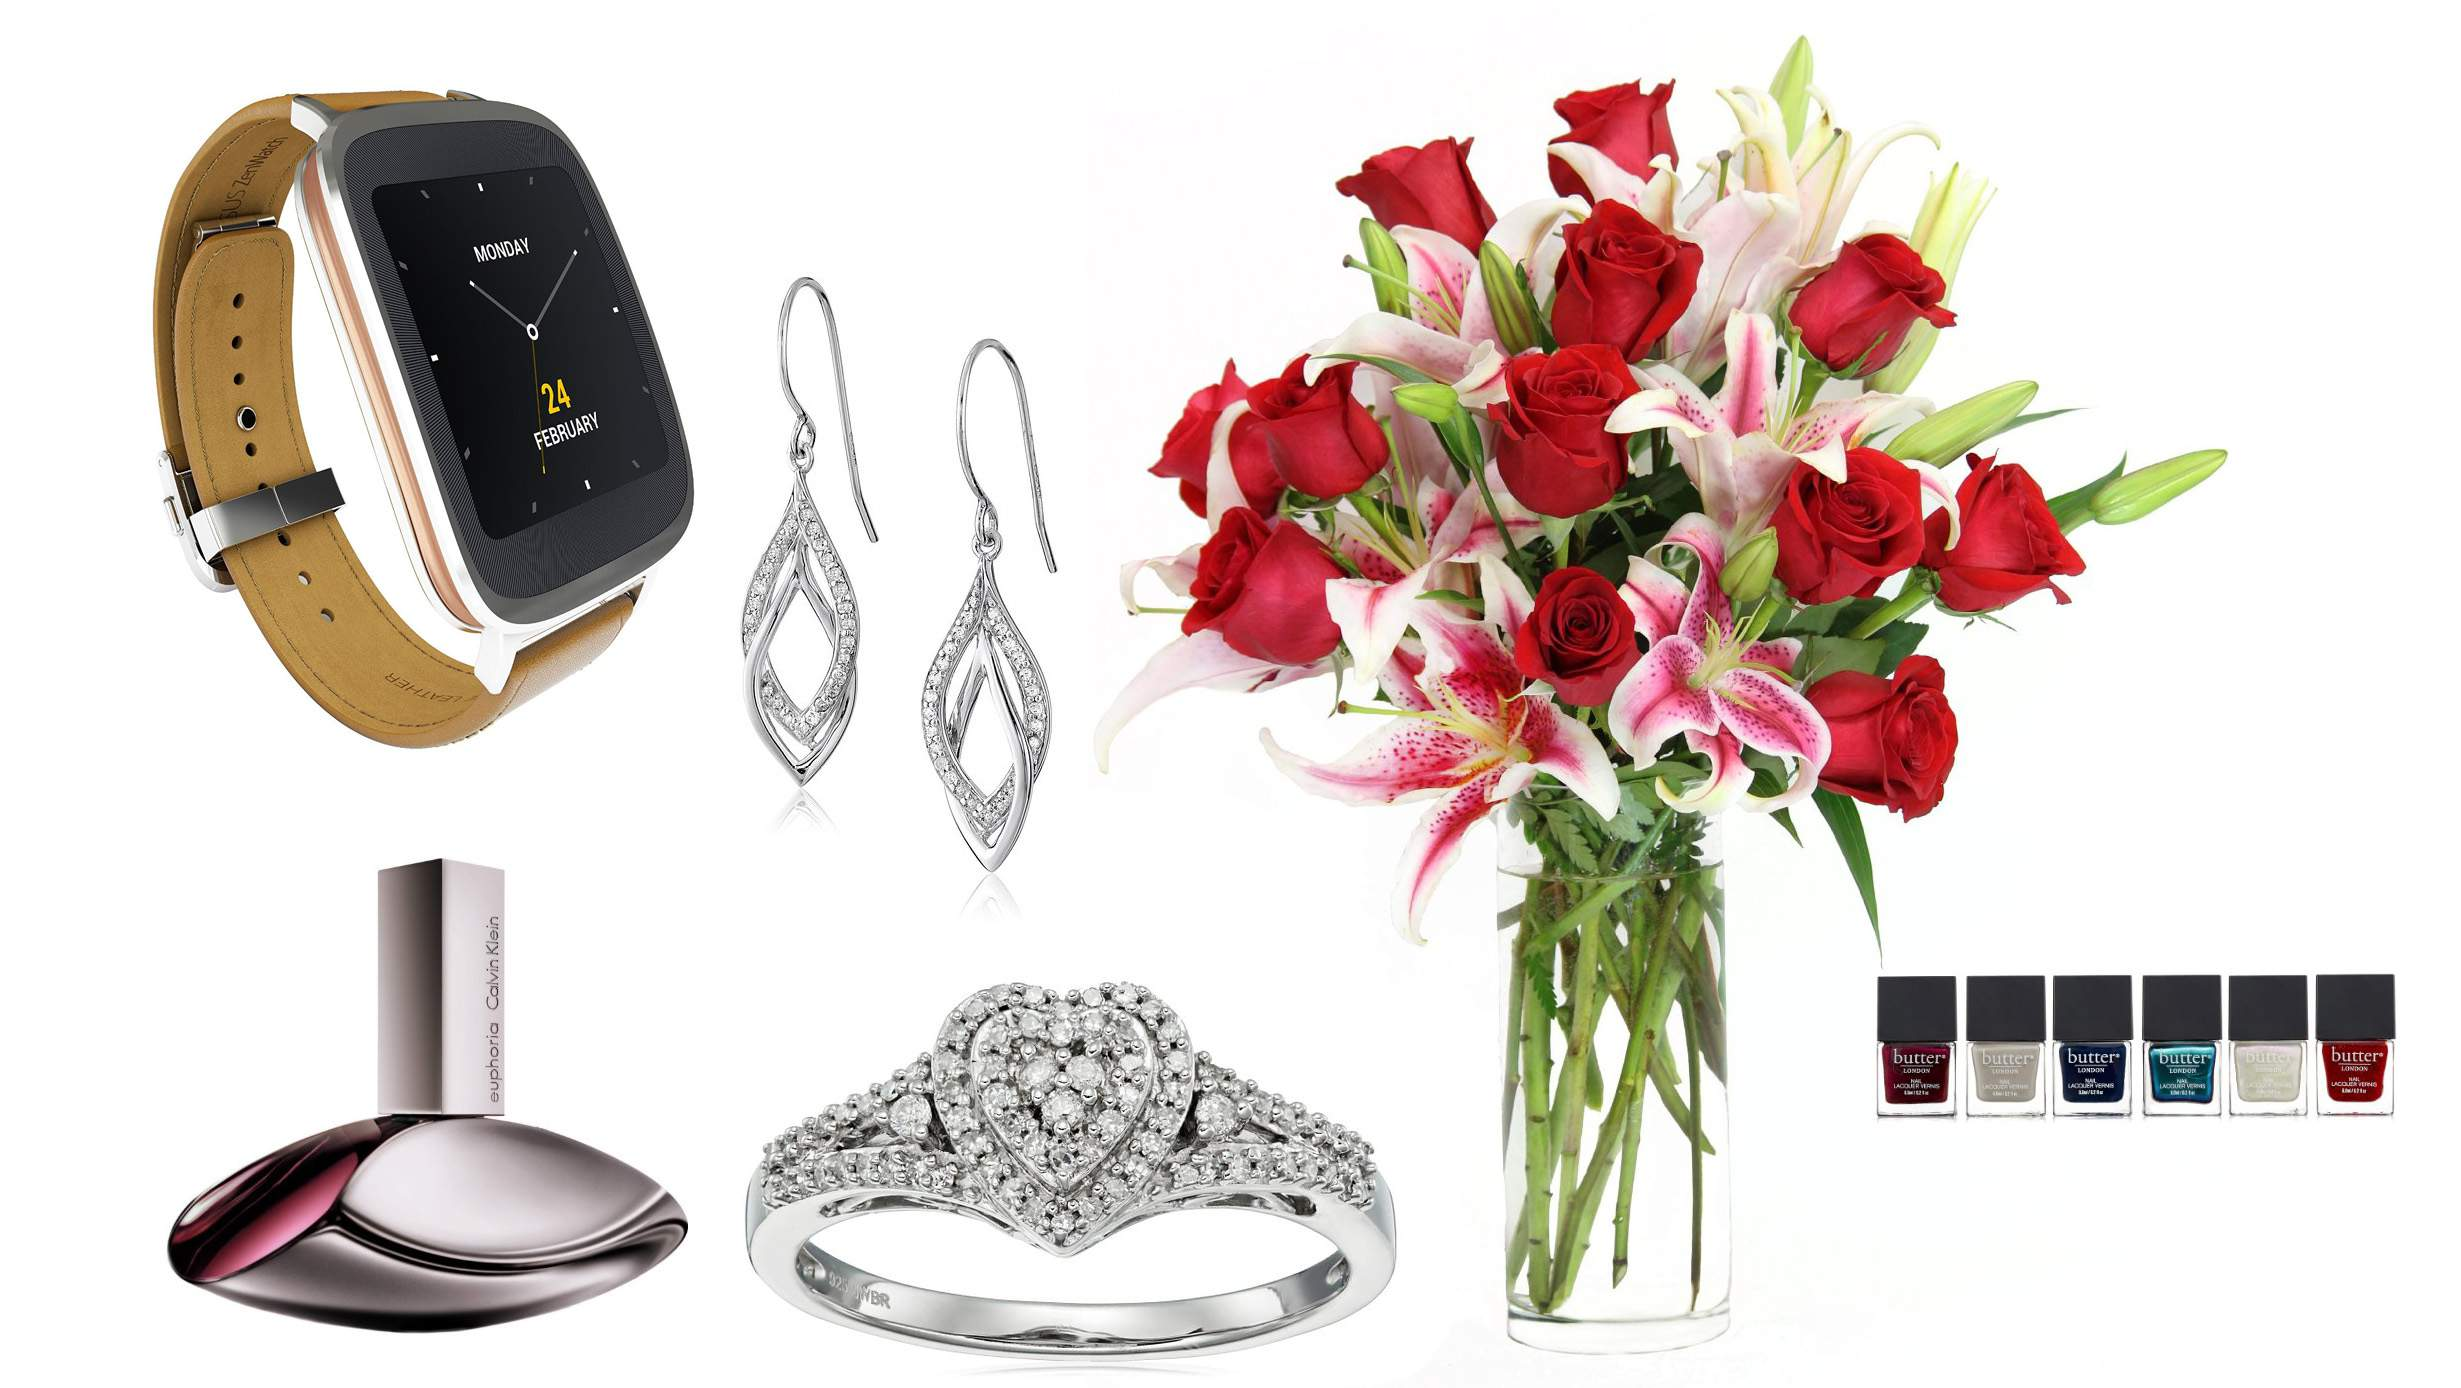 Romantic valentine day gifts ideas for her - Khaleej Mag - News ...